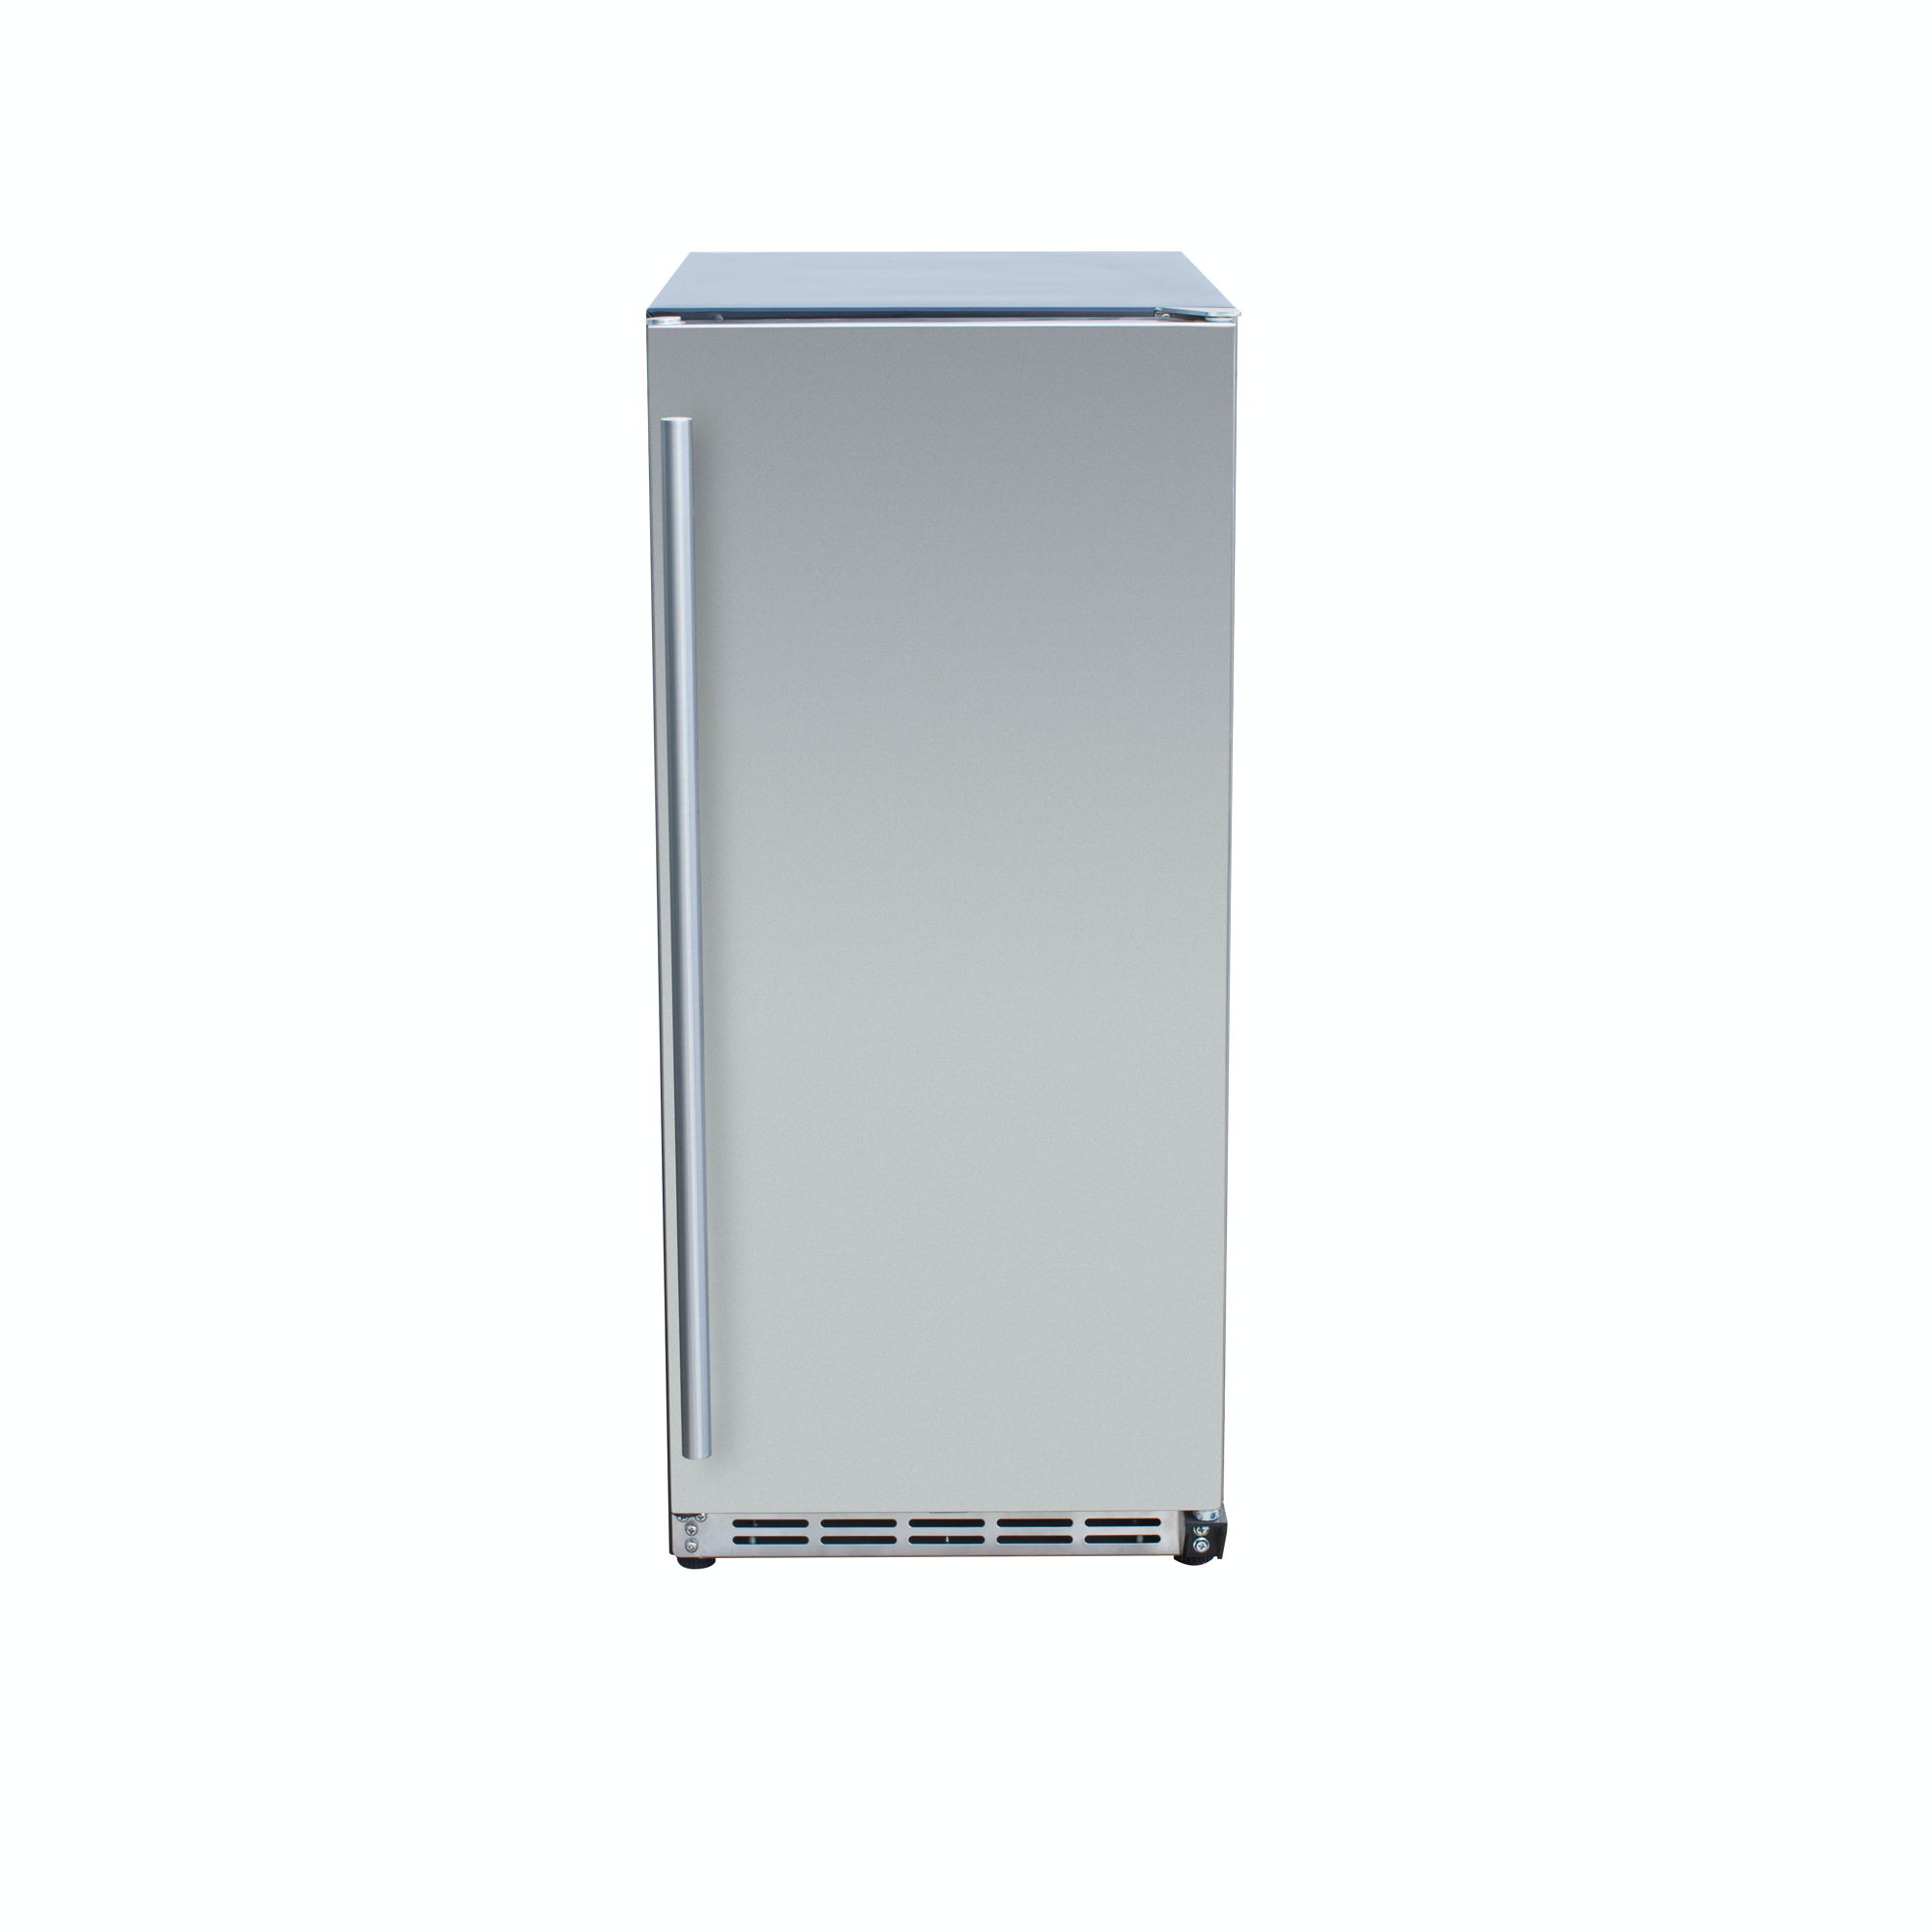 "15"" Outdoor Rated Fridge with Stainless Door"